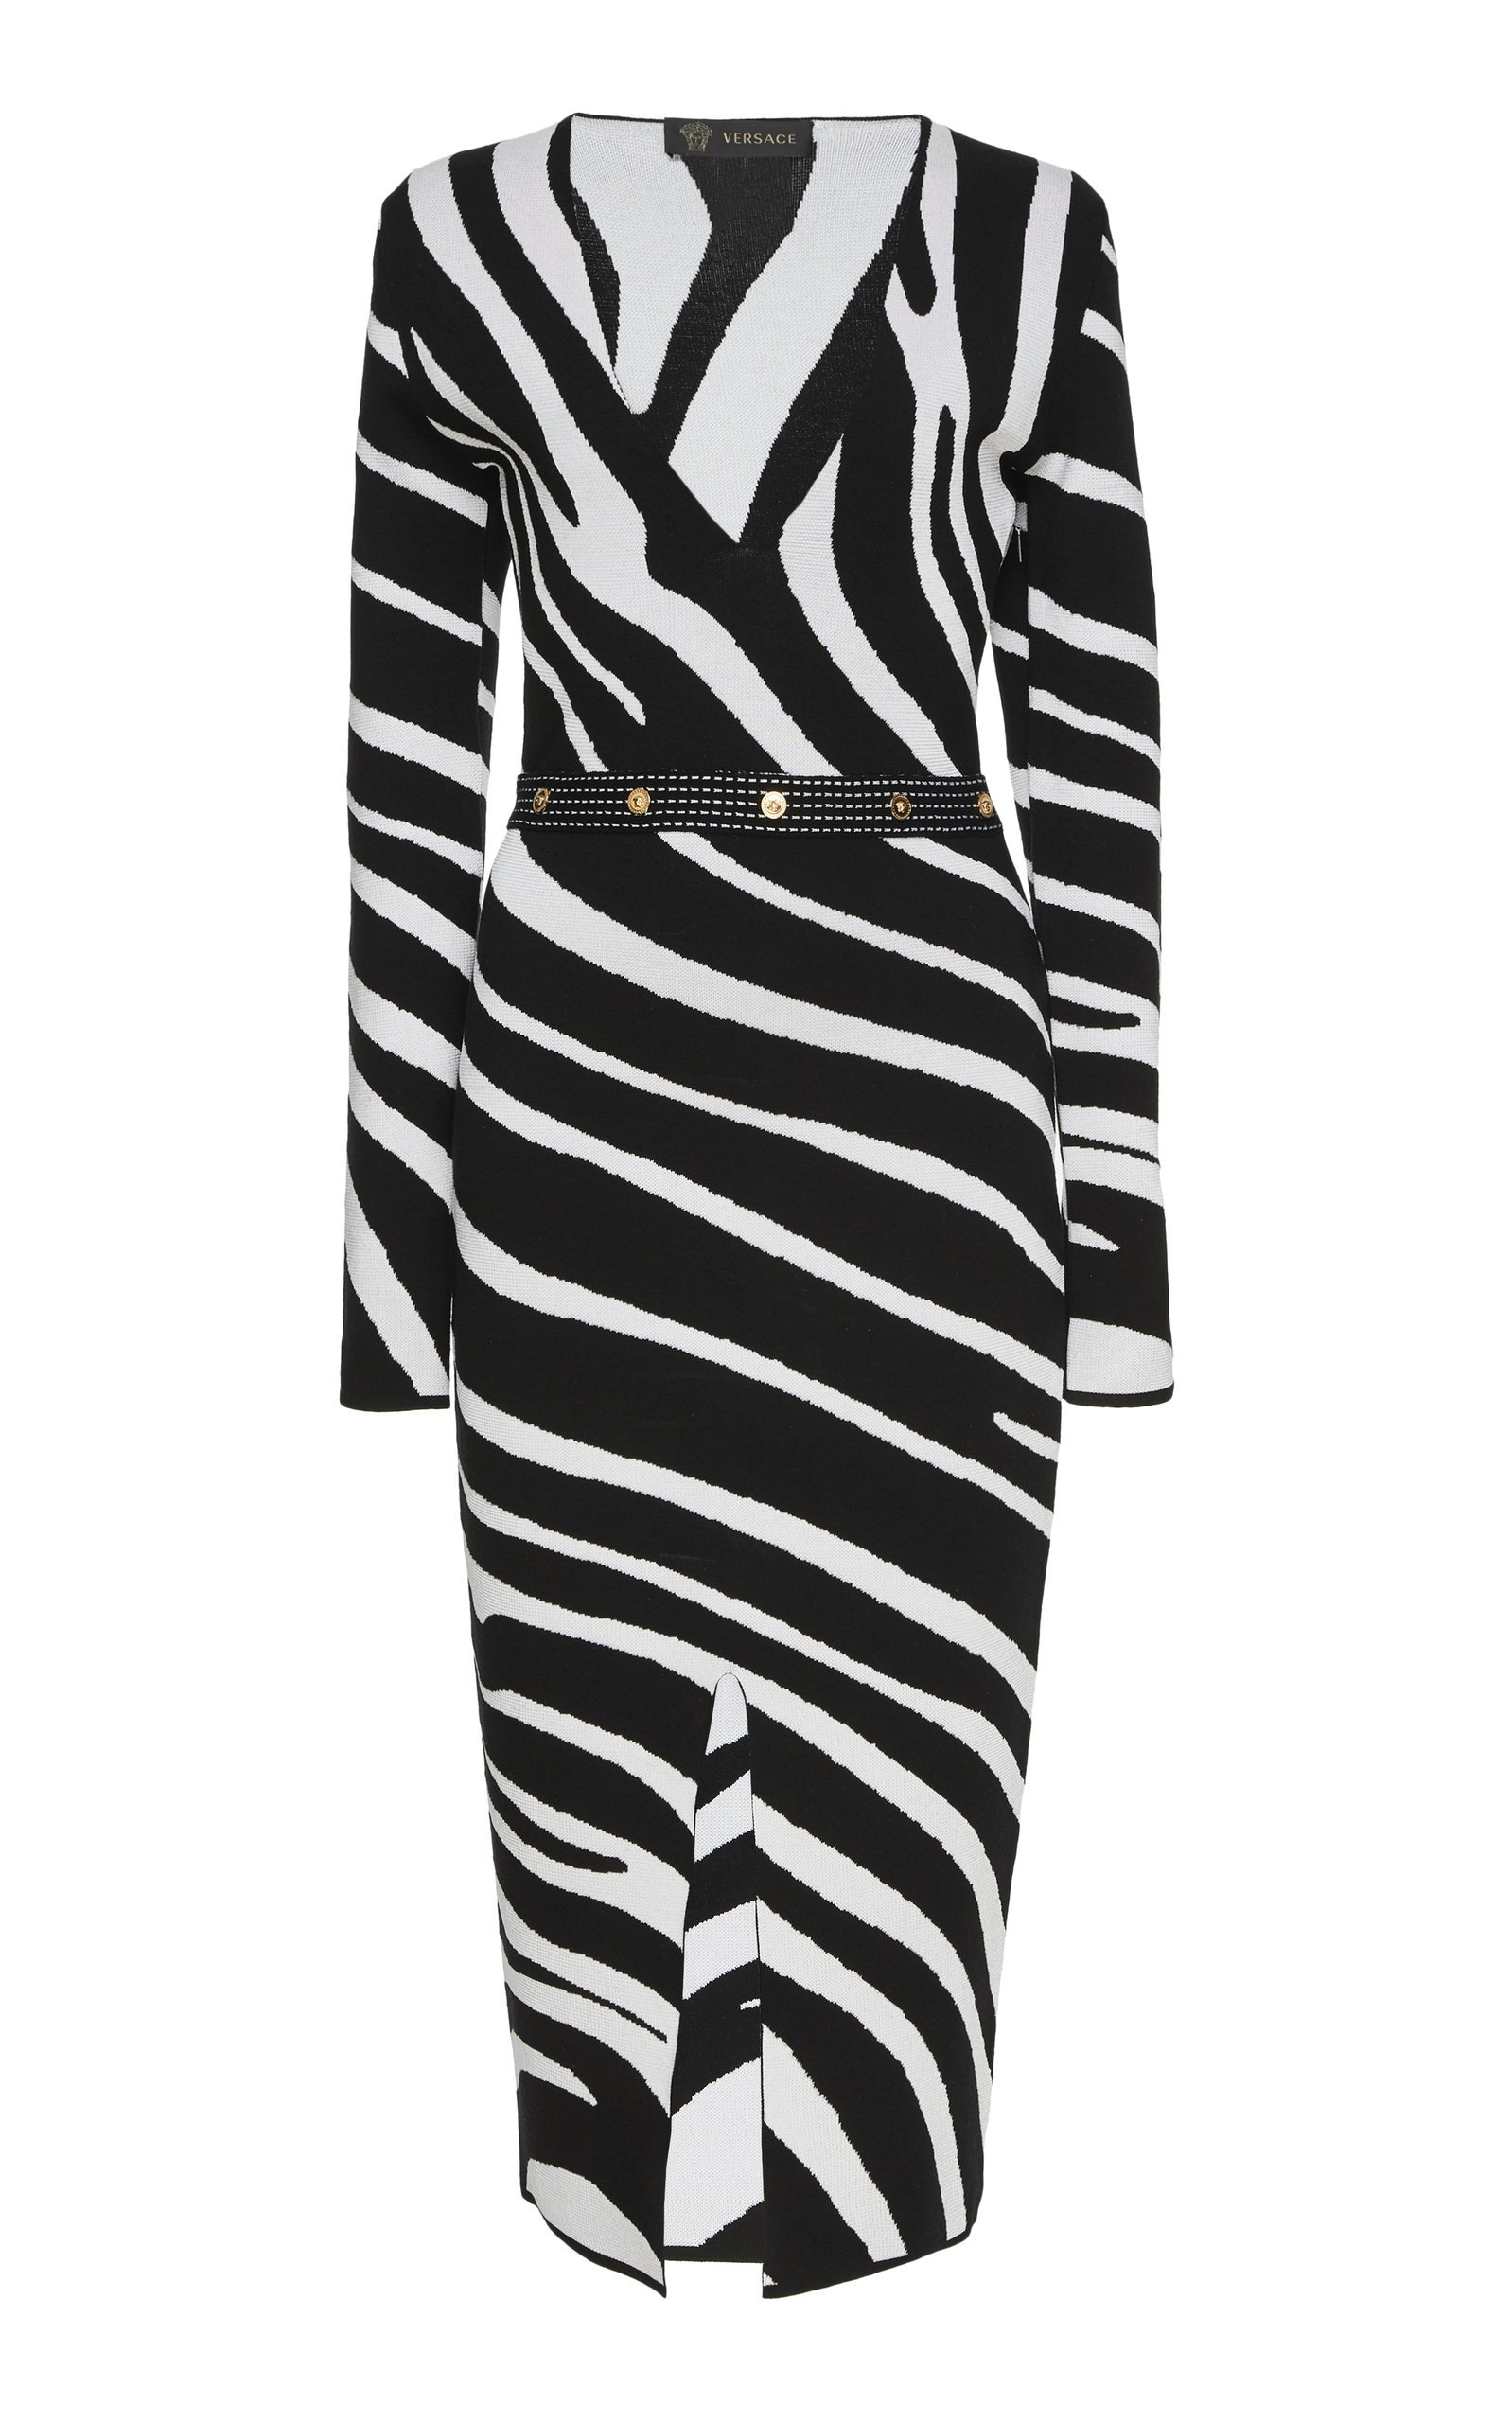 Bella Freud- Zebra Print Satin Midi Dress